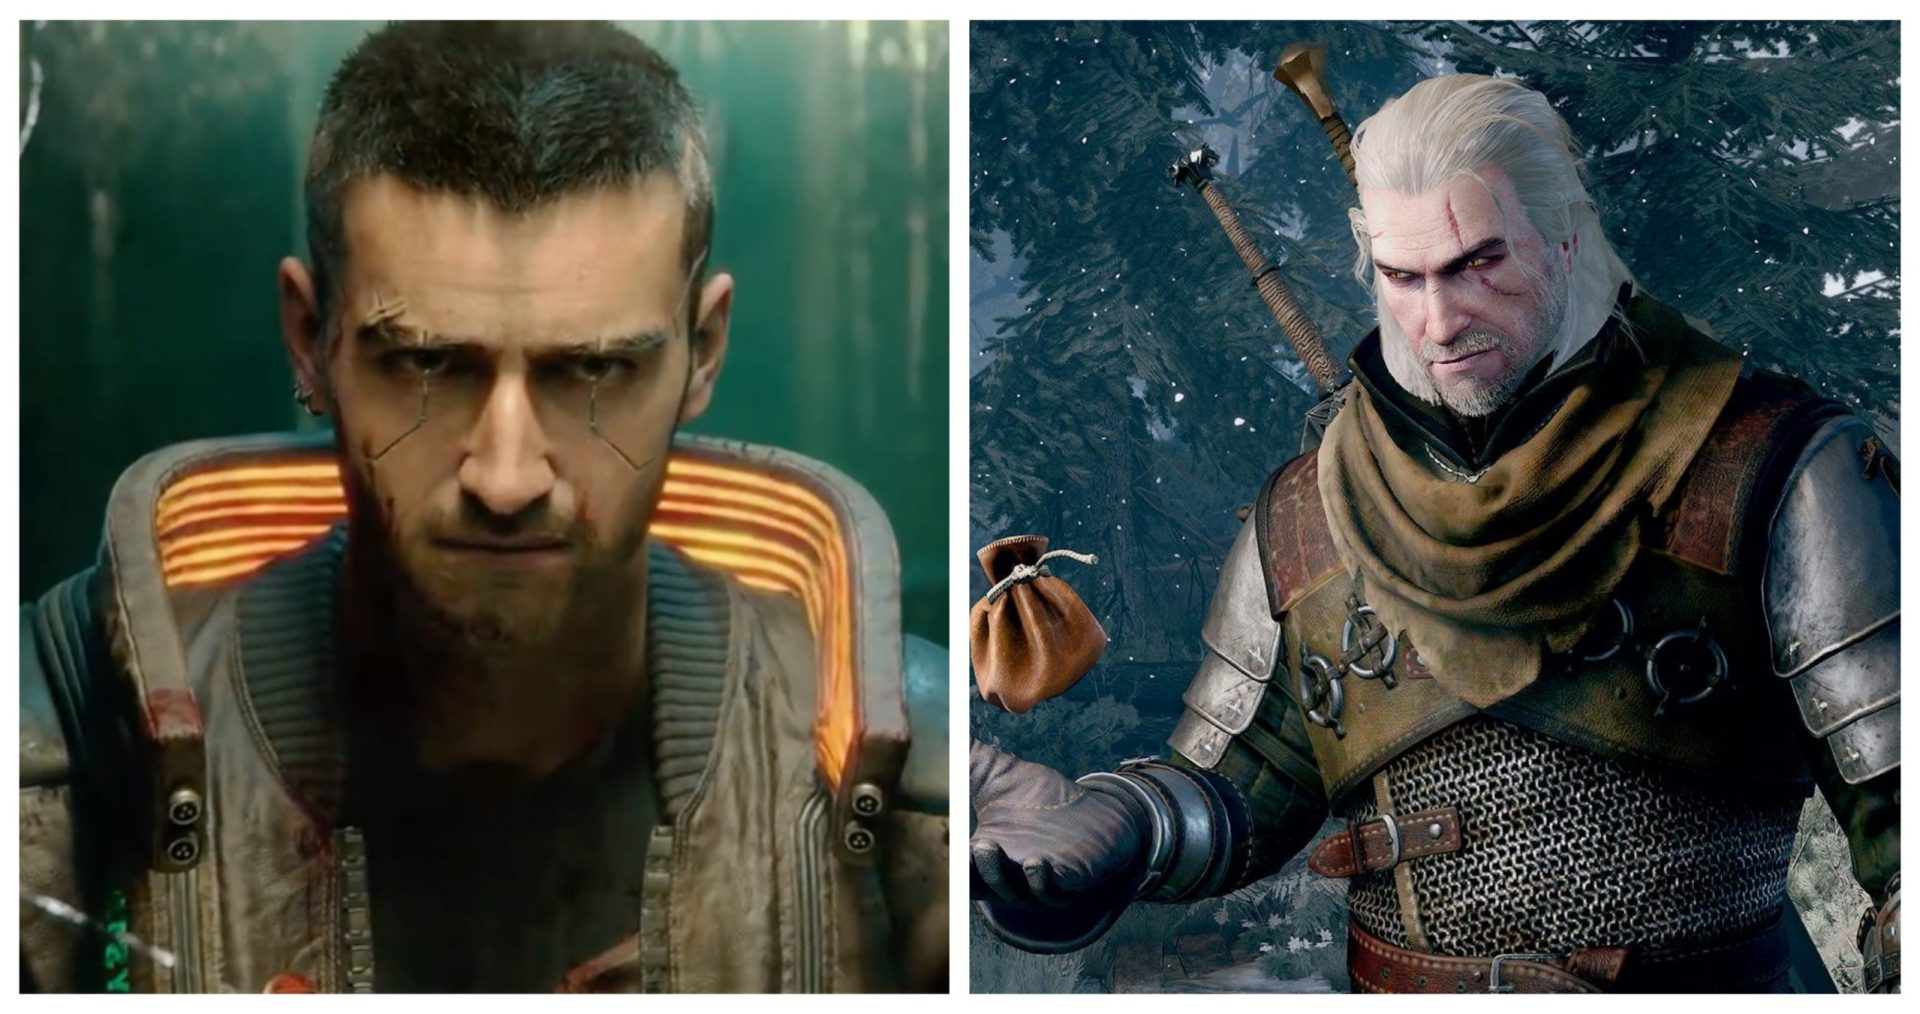 CD Projekt Red suffers cyber attack, Cyberpunk 2077 and Witcher 3 source codes stolen - THE SPORTS ROOM